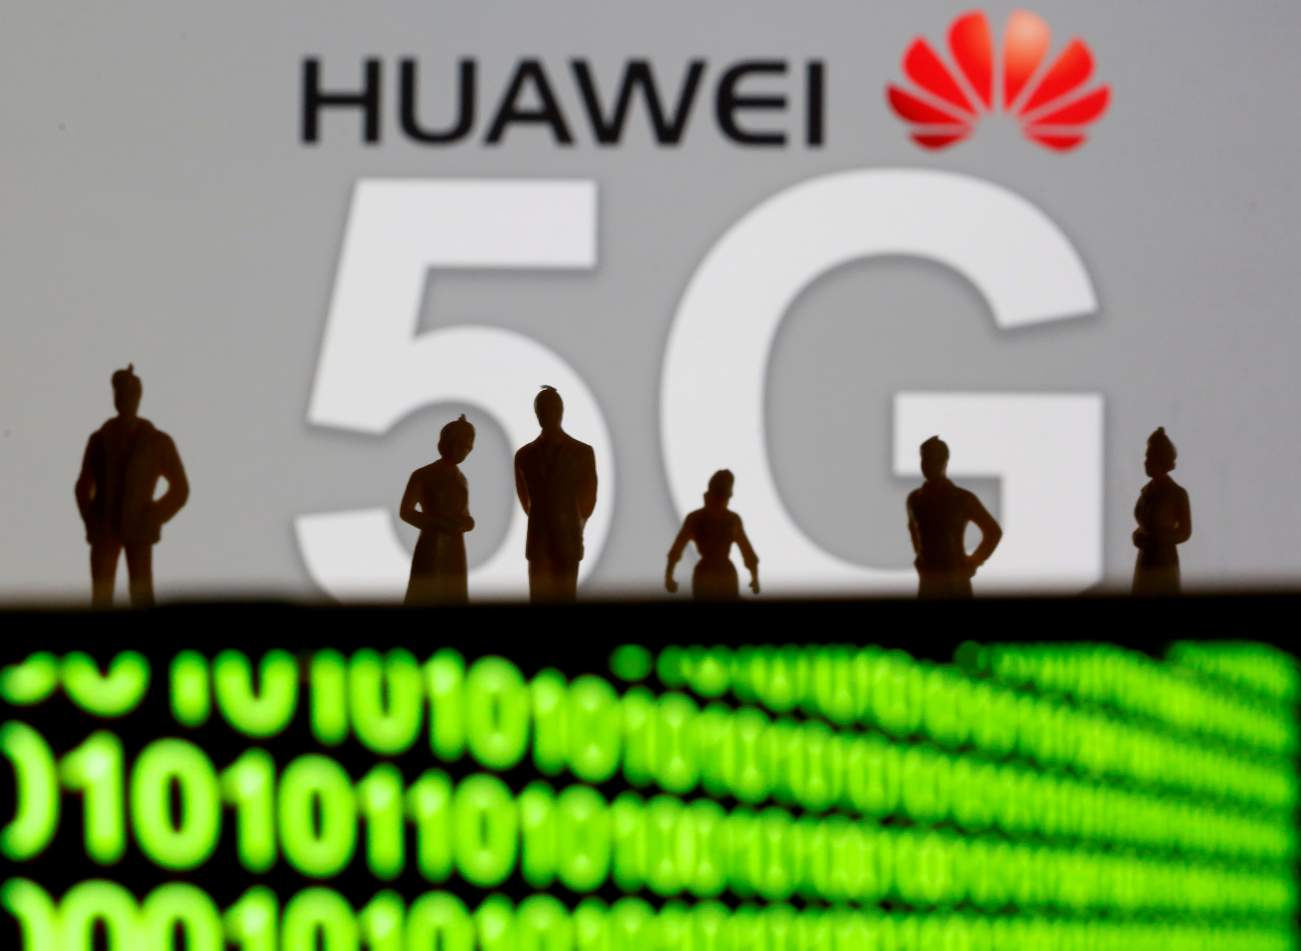 Huawei isn't backing off - signed 46 commercial 5G projects in 30 countries